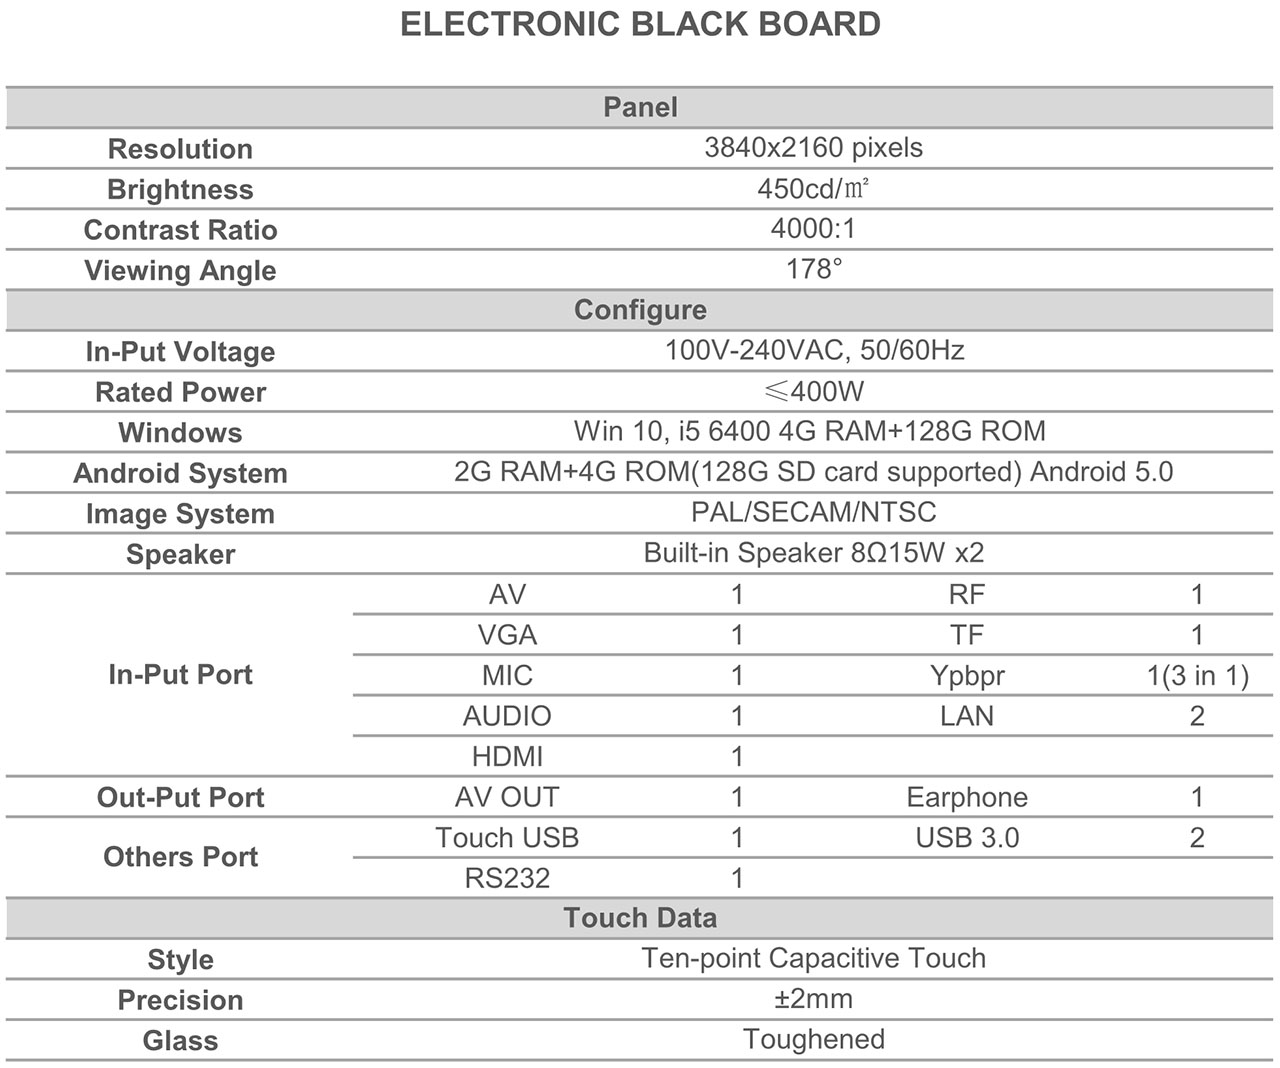 Electronic Black Board Specification-1